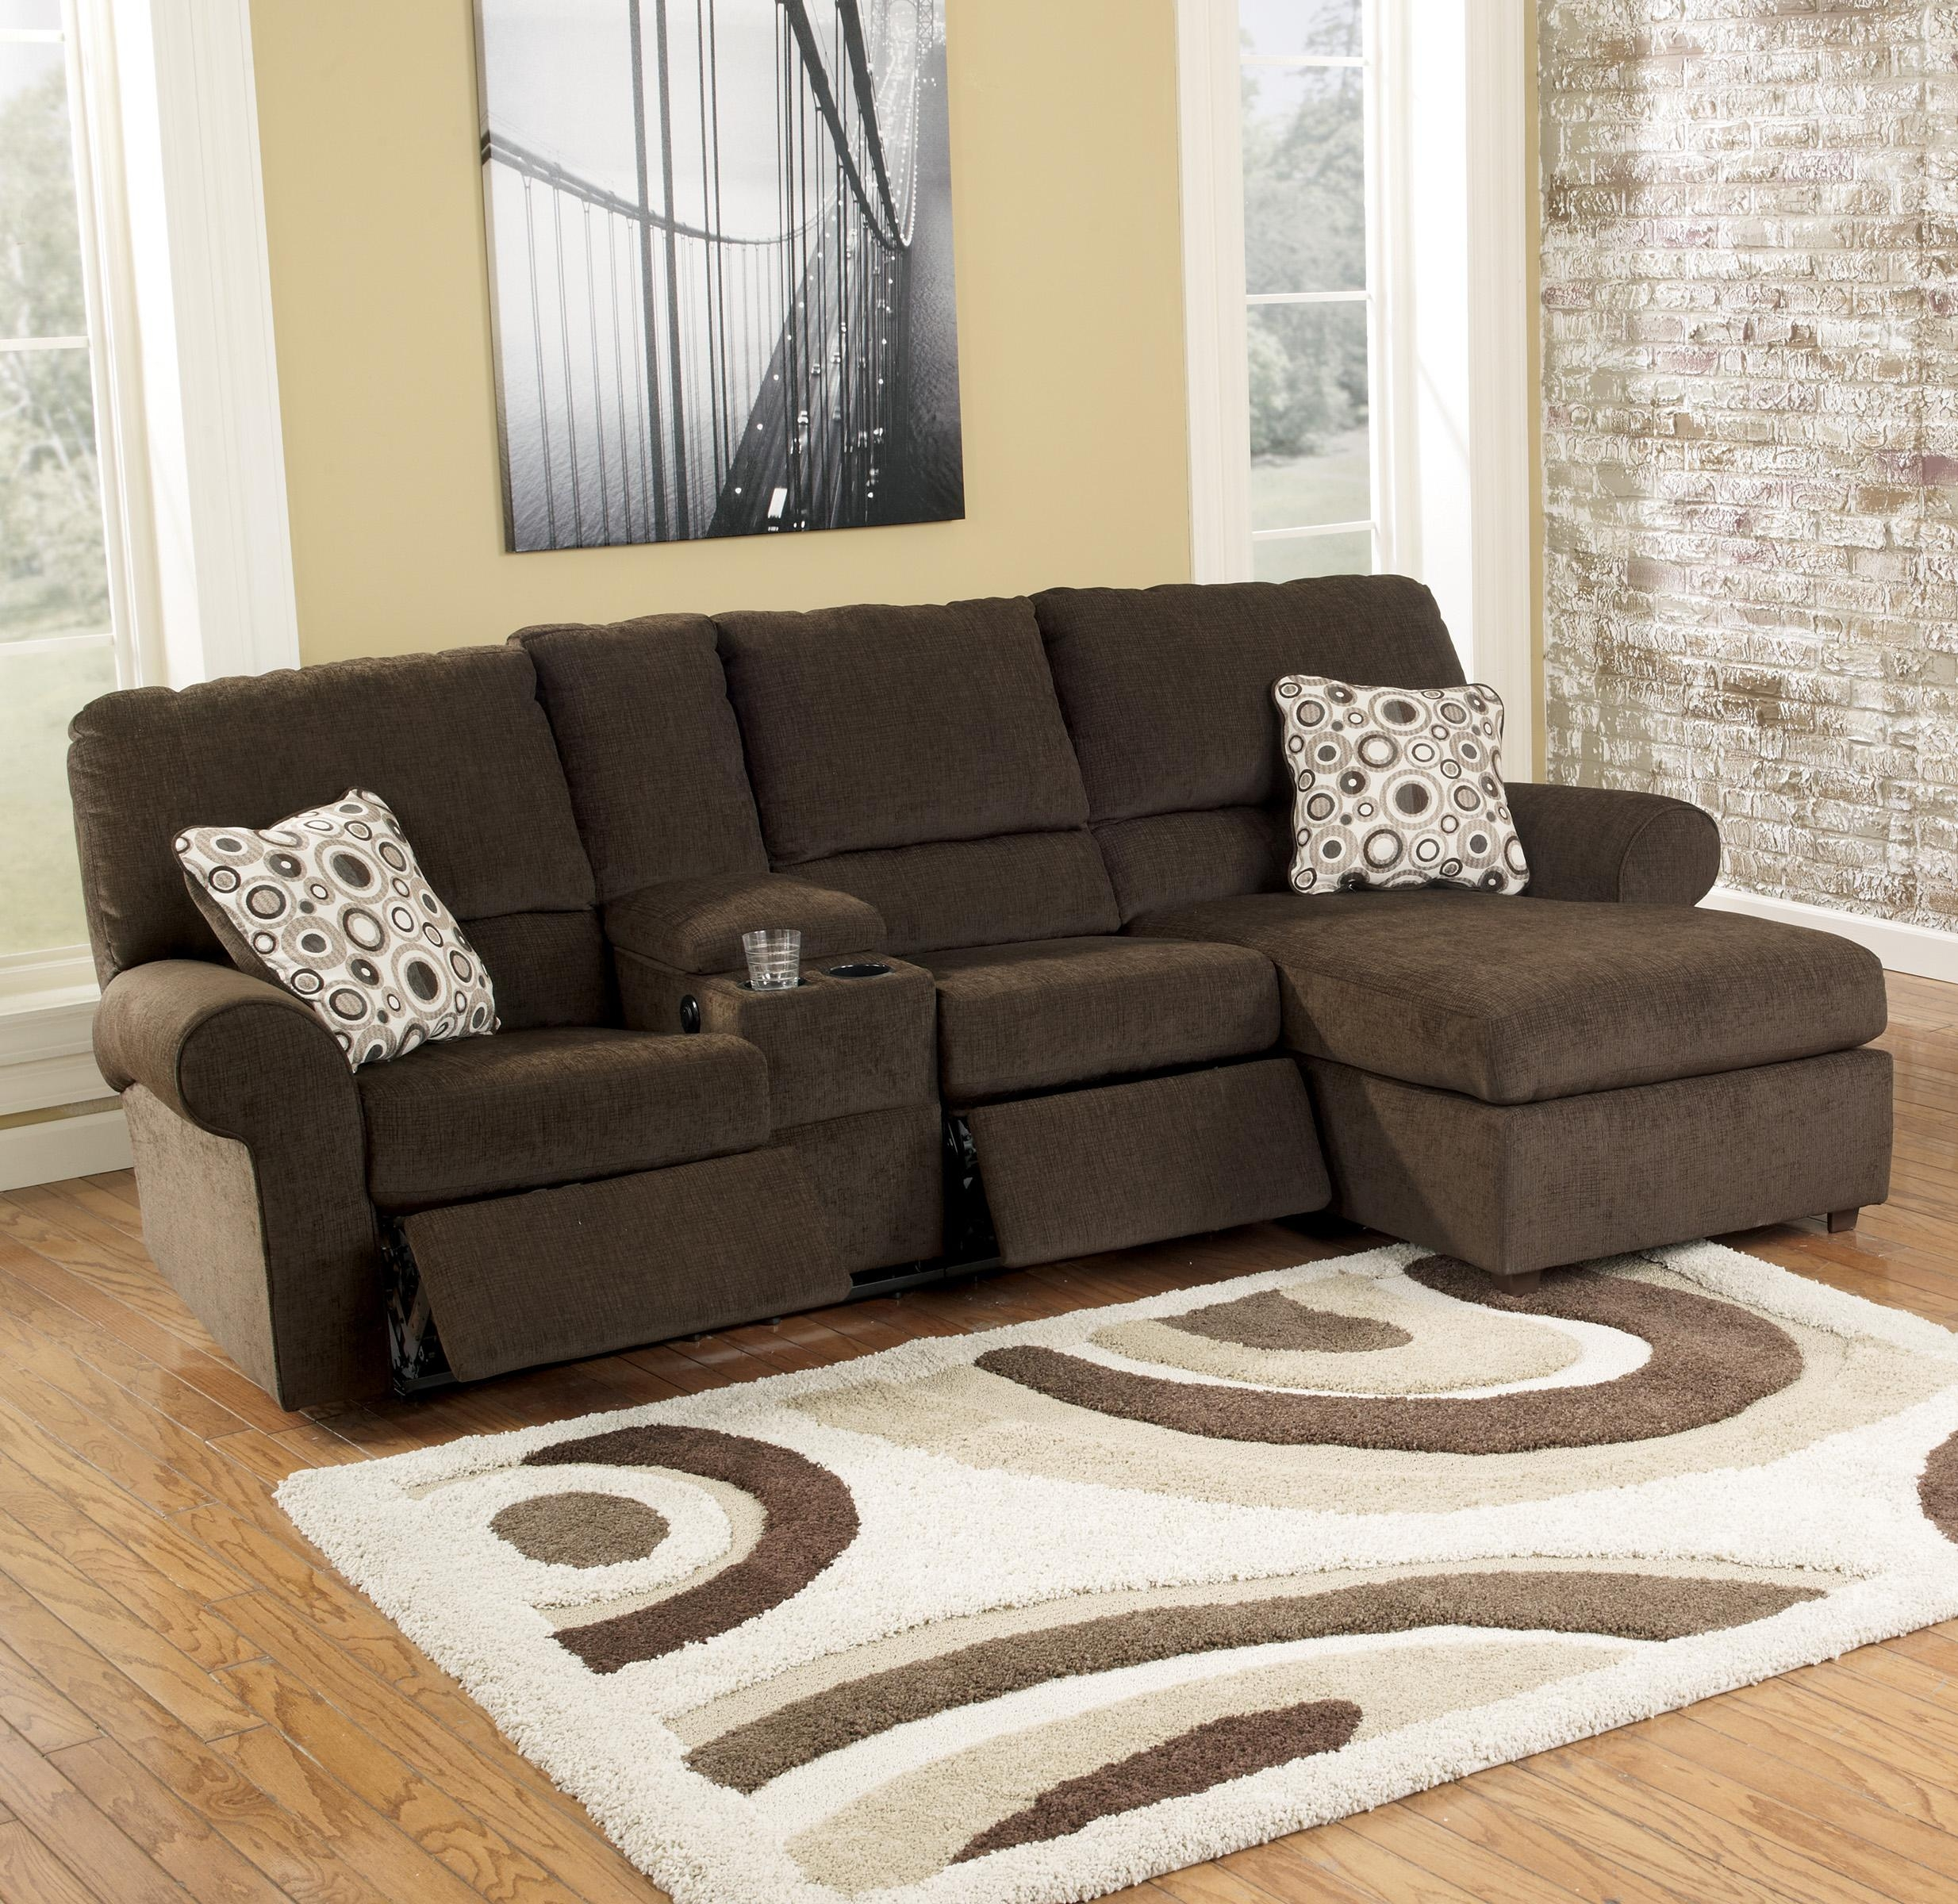 c shaped sofa designs scotch and berlin bar 12 photo of sectional